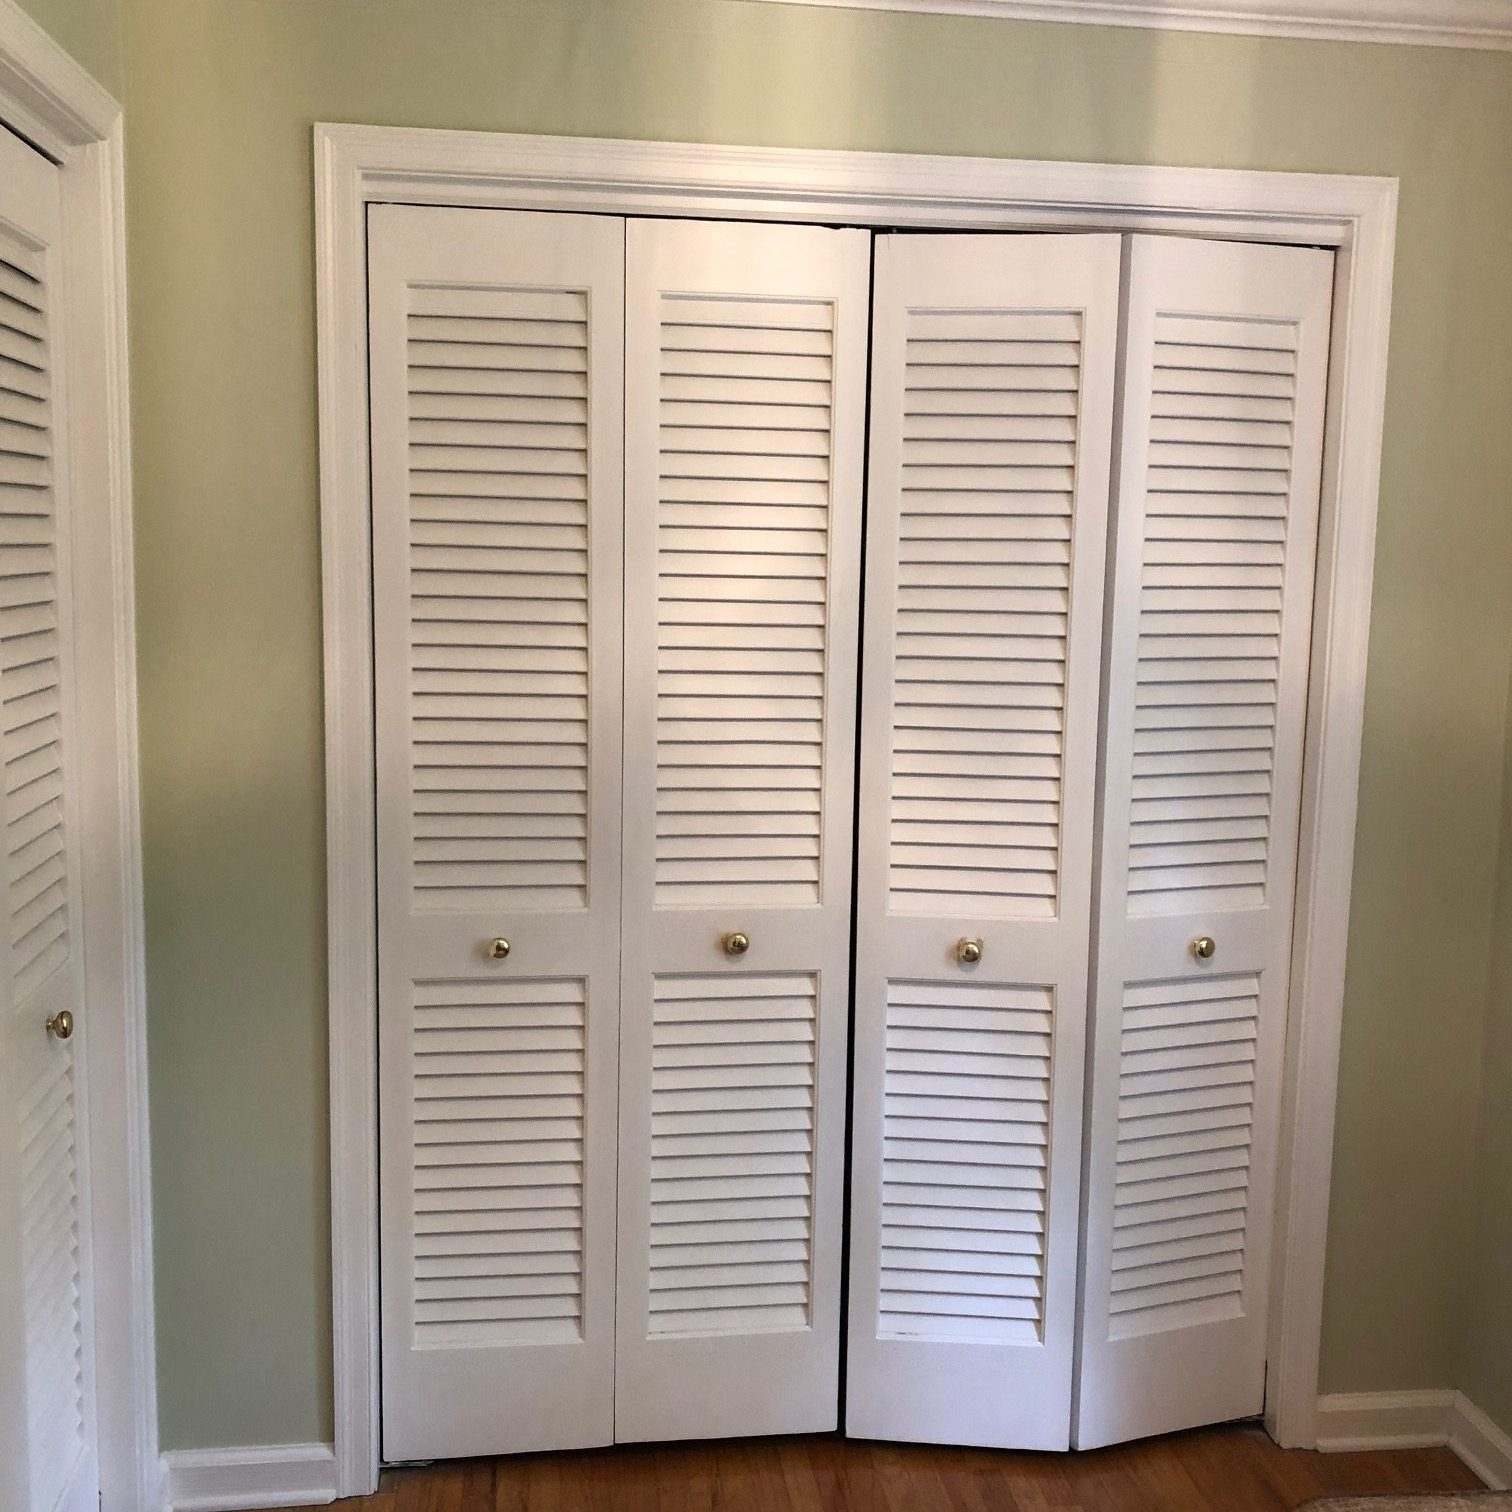 Luxury Remodel Closet Before